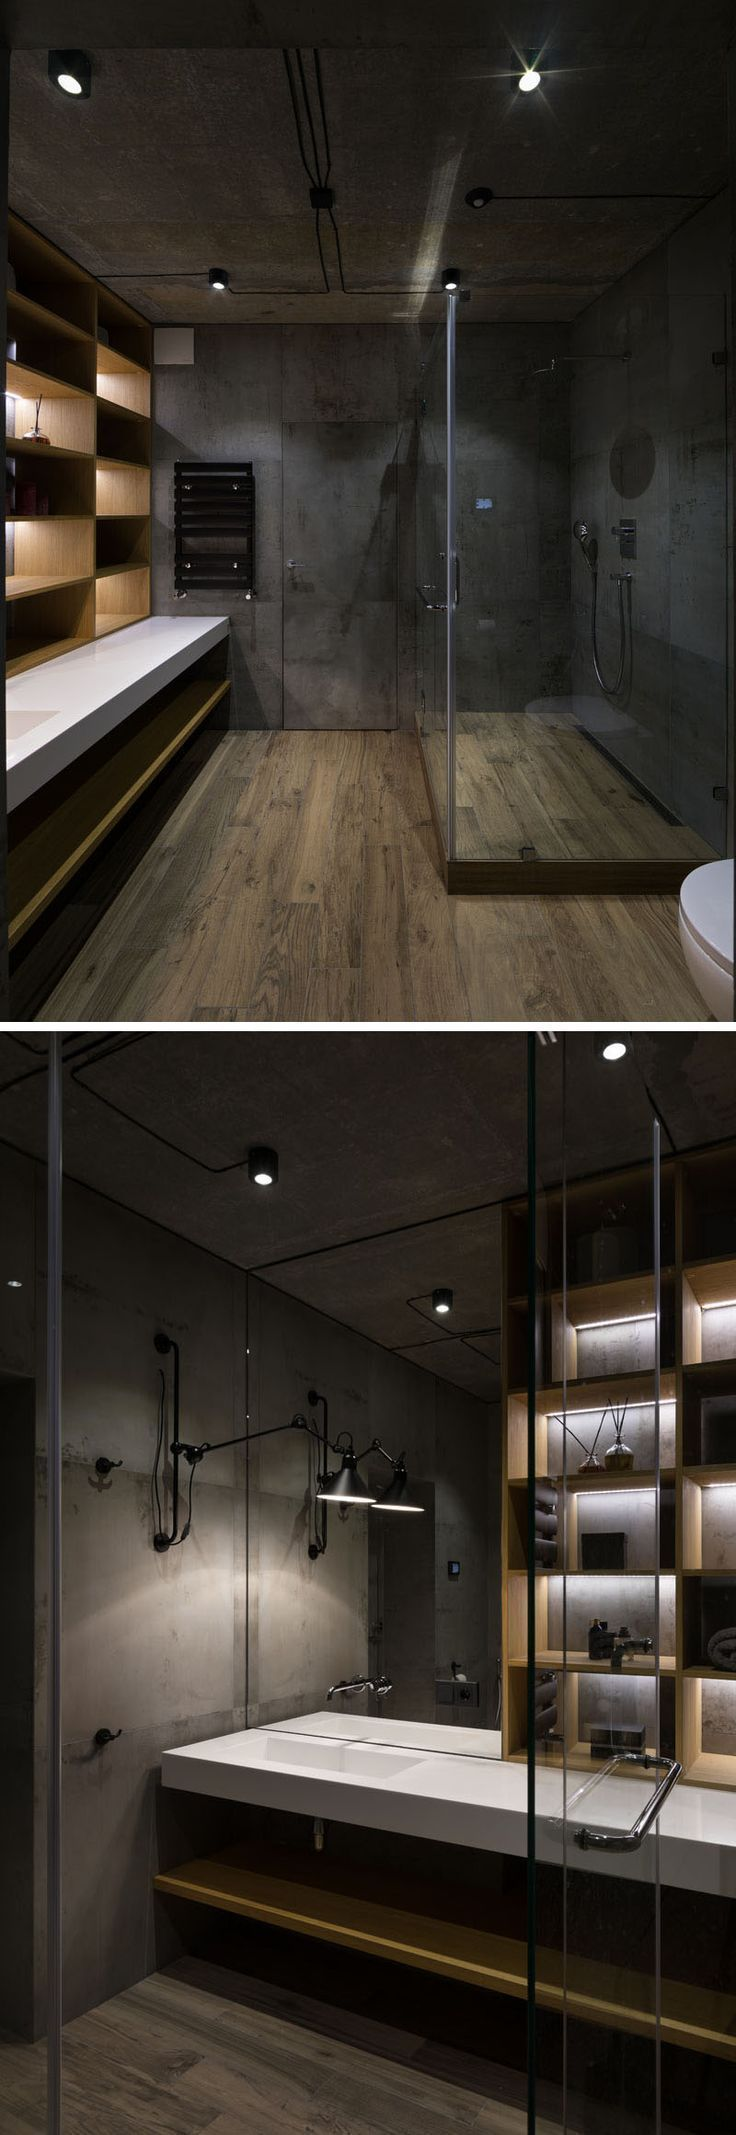 What Have These Lighting Designs In Common?